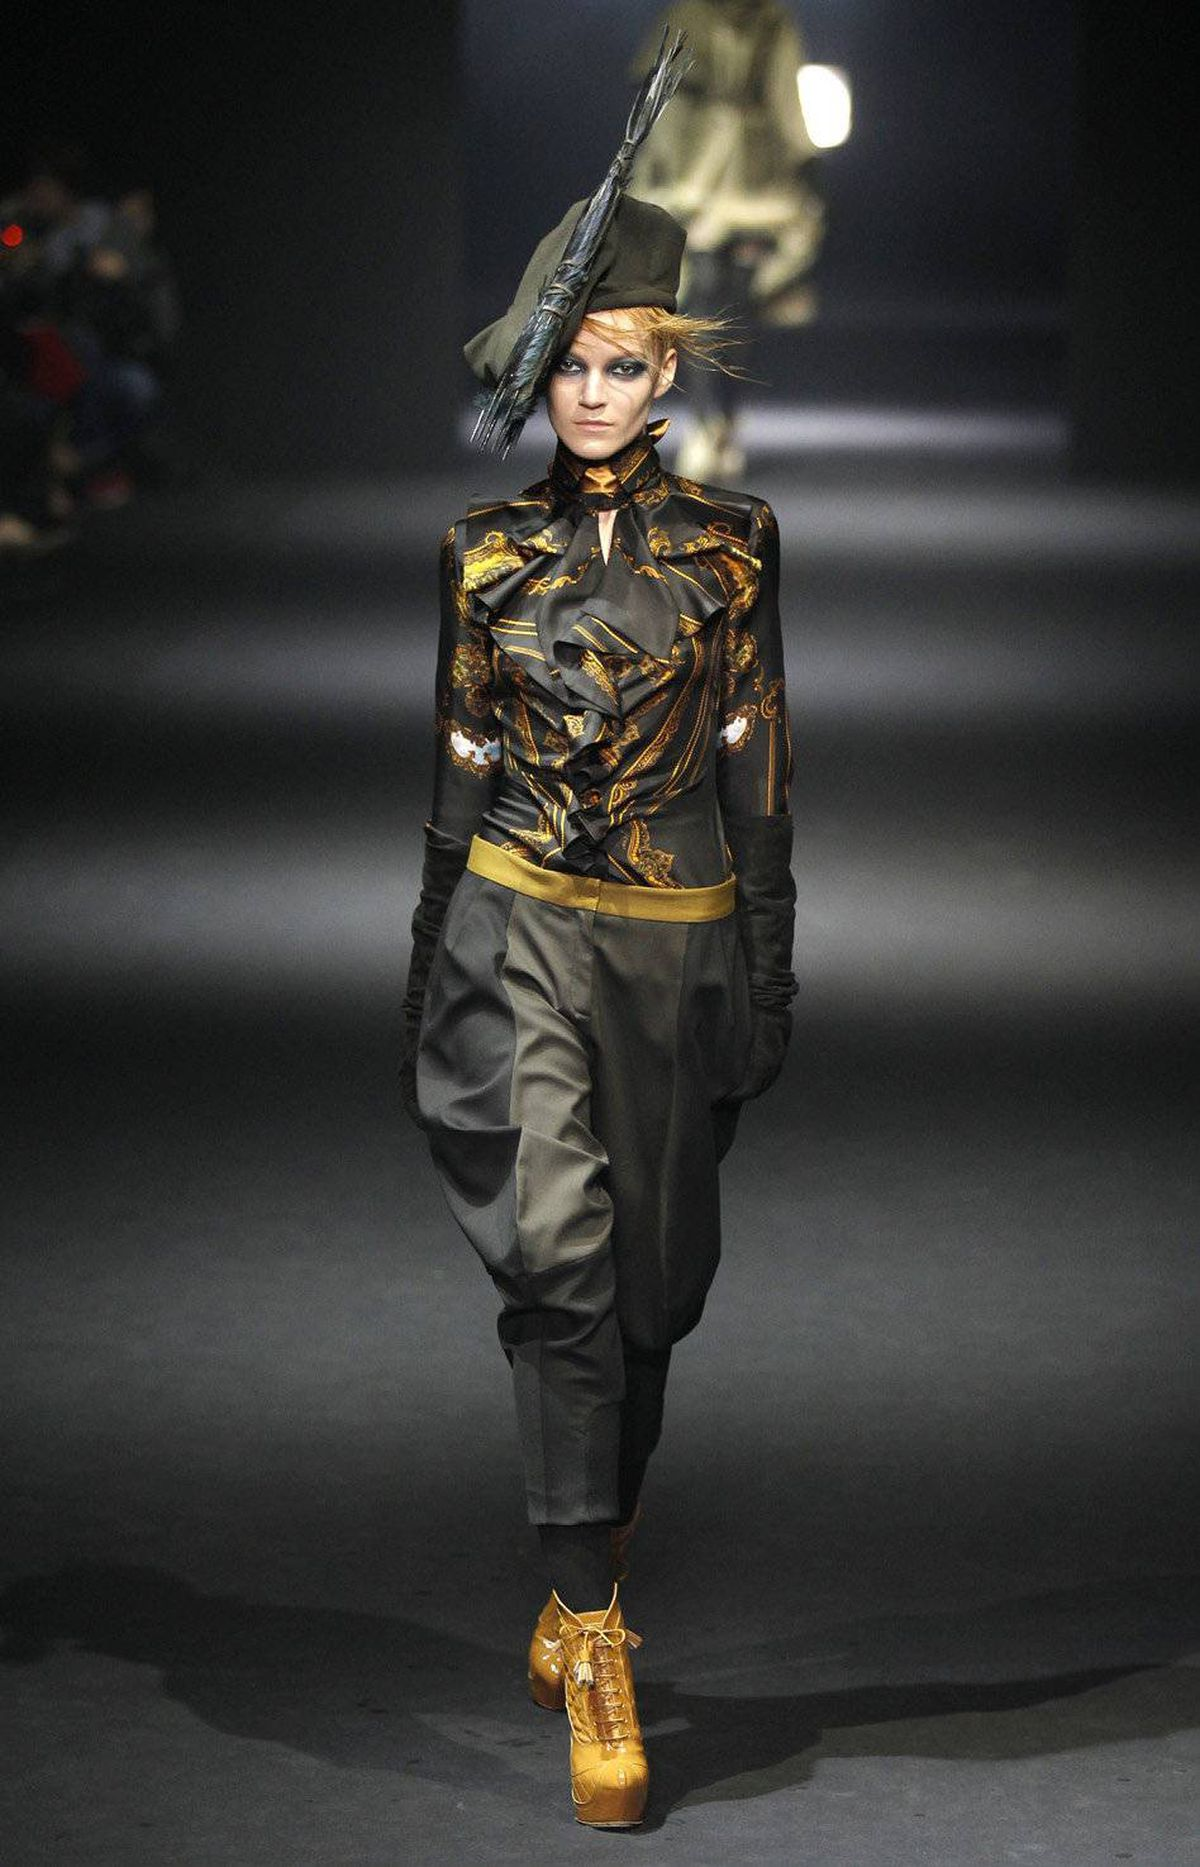 Fuller, jockey-style trousers also appeared at John Galliano, which is under the creative helm of Bill Gaytten, who is currently also designing for Christian Dior. Inspired by the illustrator Aubrey Beardsley, he played with ruff collar blouses, equestrian elements and caps fronted with clusters of branches.